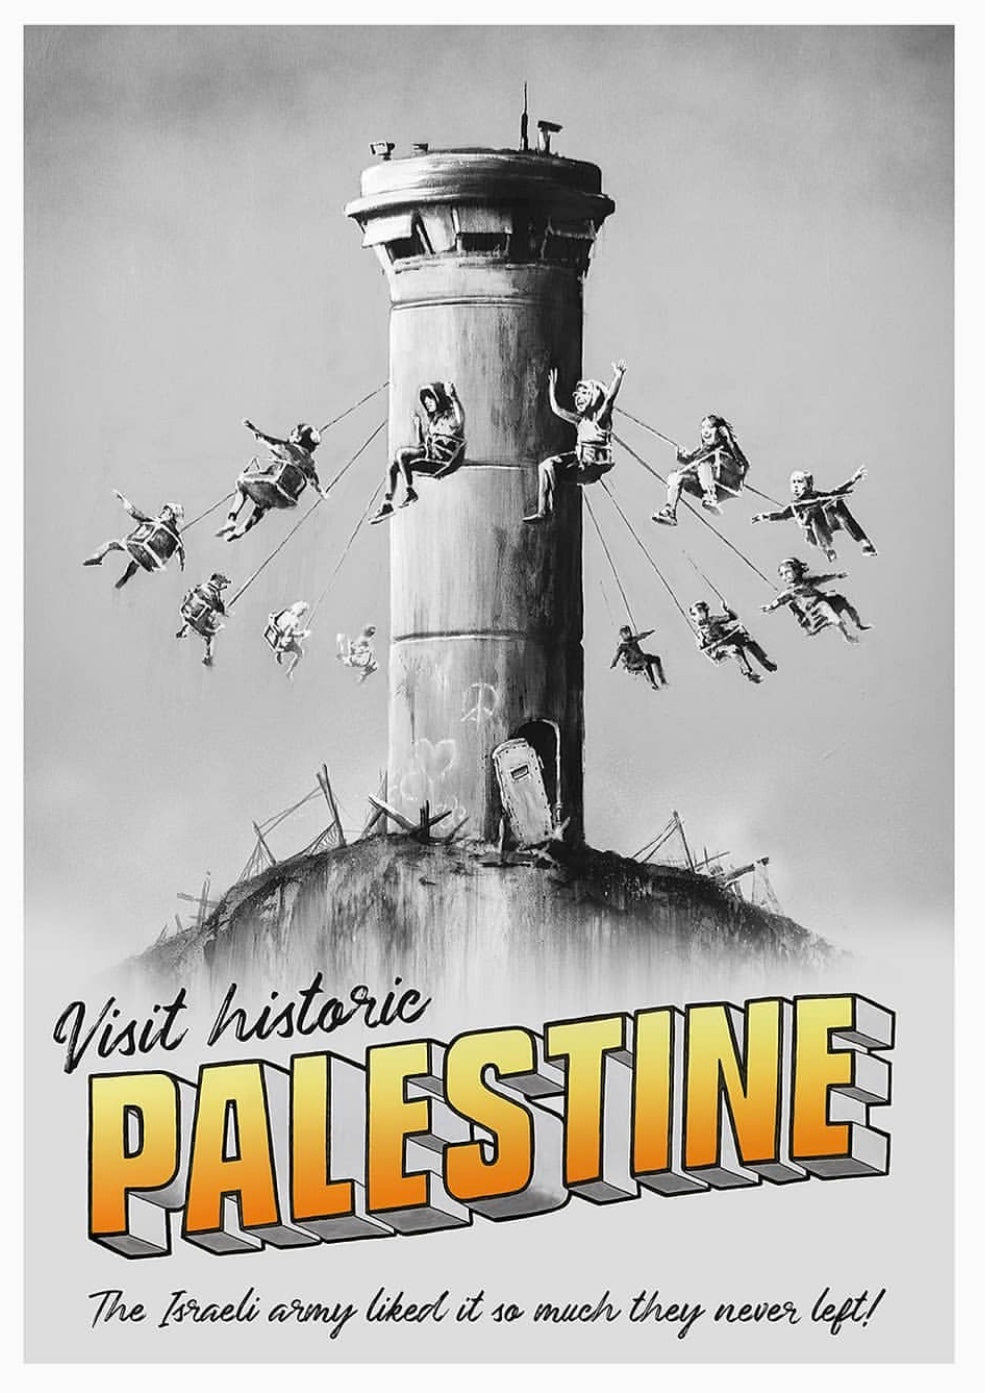 Banksy Walled Off Hotel Palestine Tower Poster